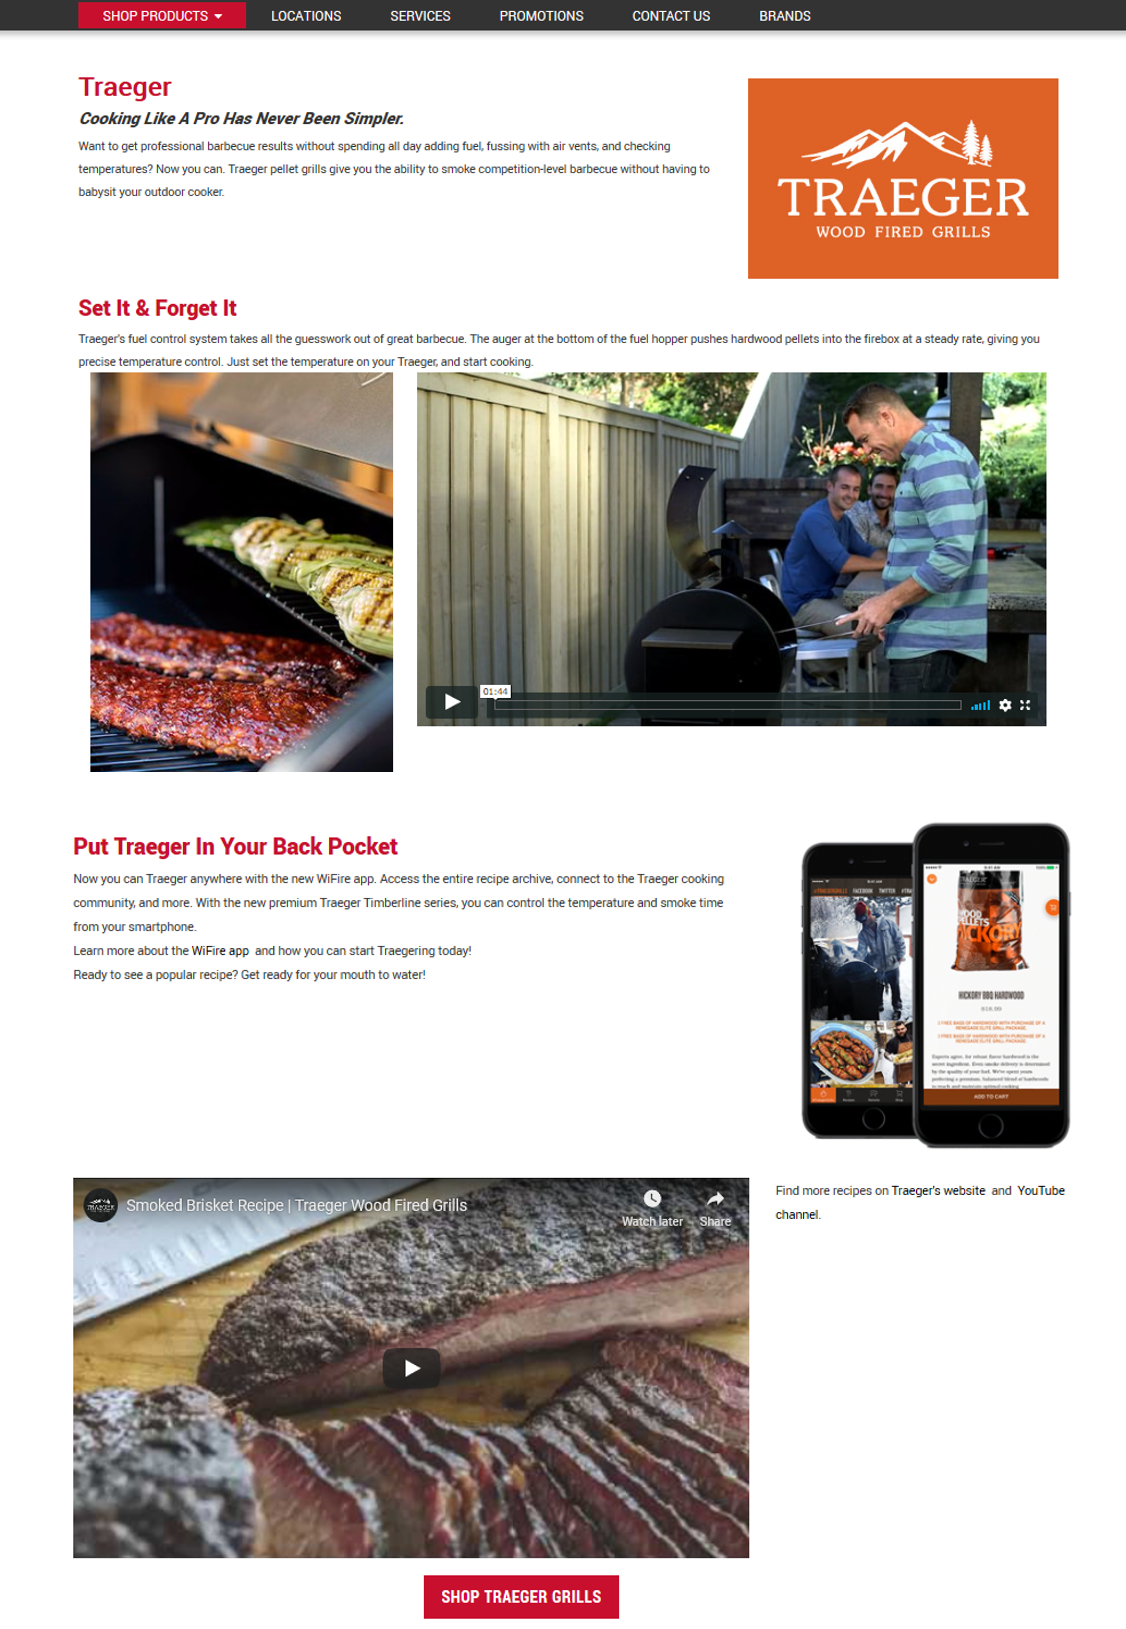 Traeger Brand Page